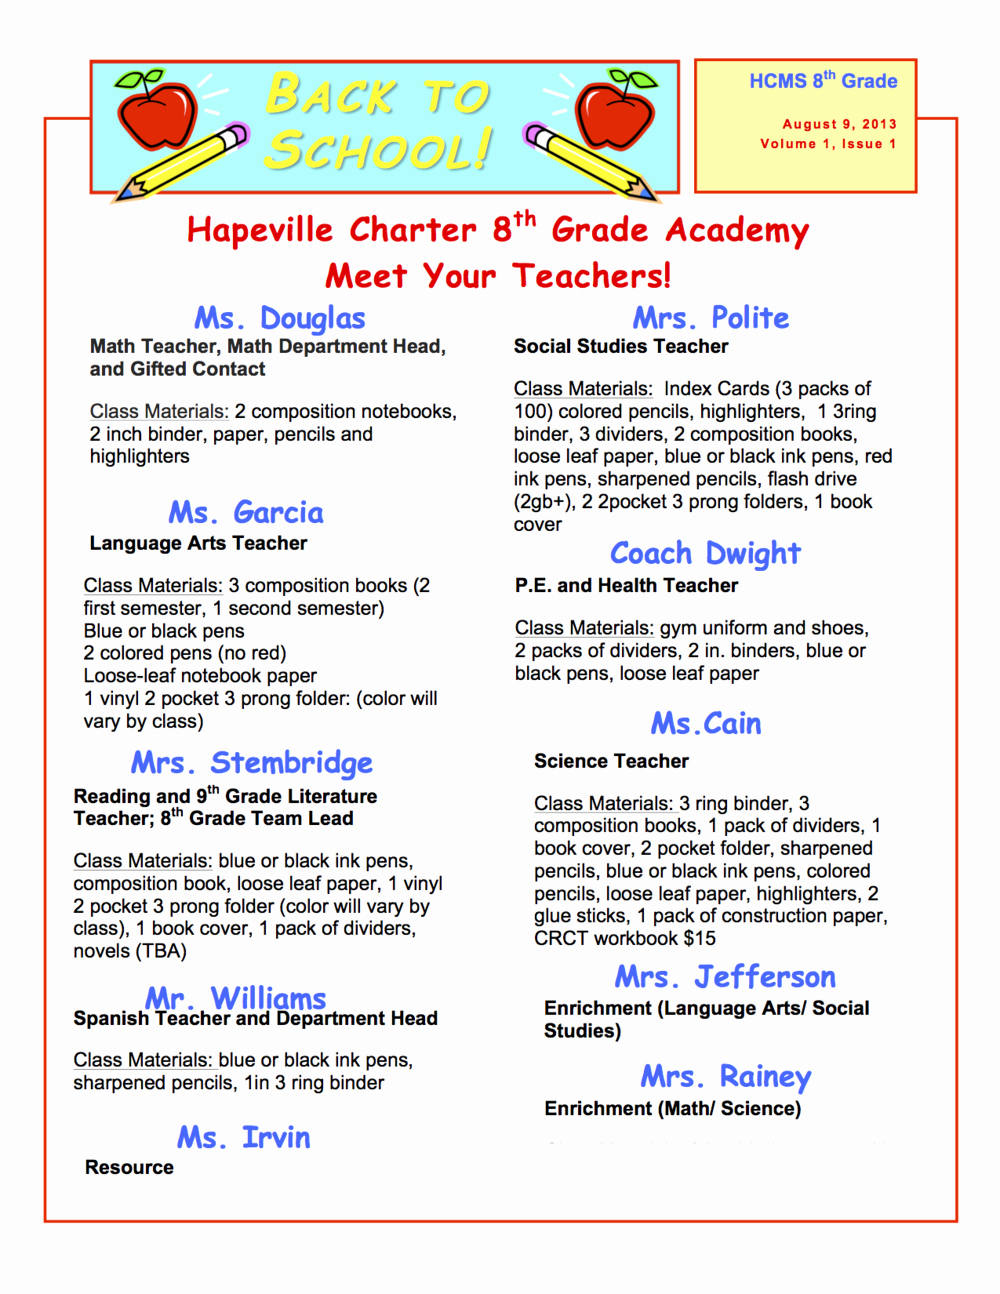 Middle School Newsletter Template Unique Back to School — Hapeville Charter Middle School